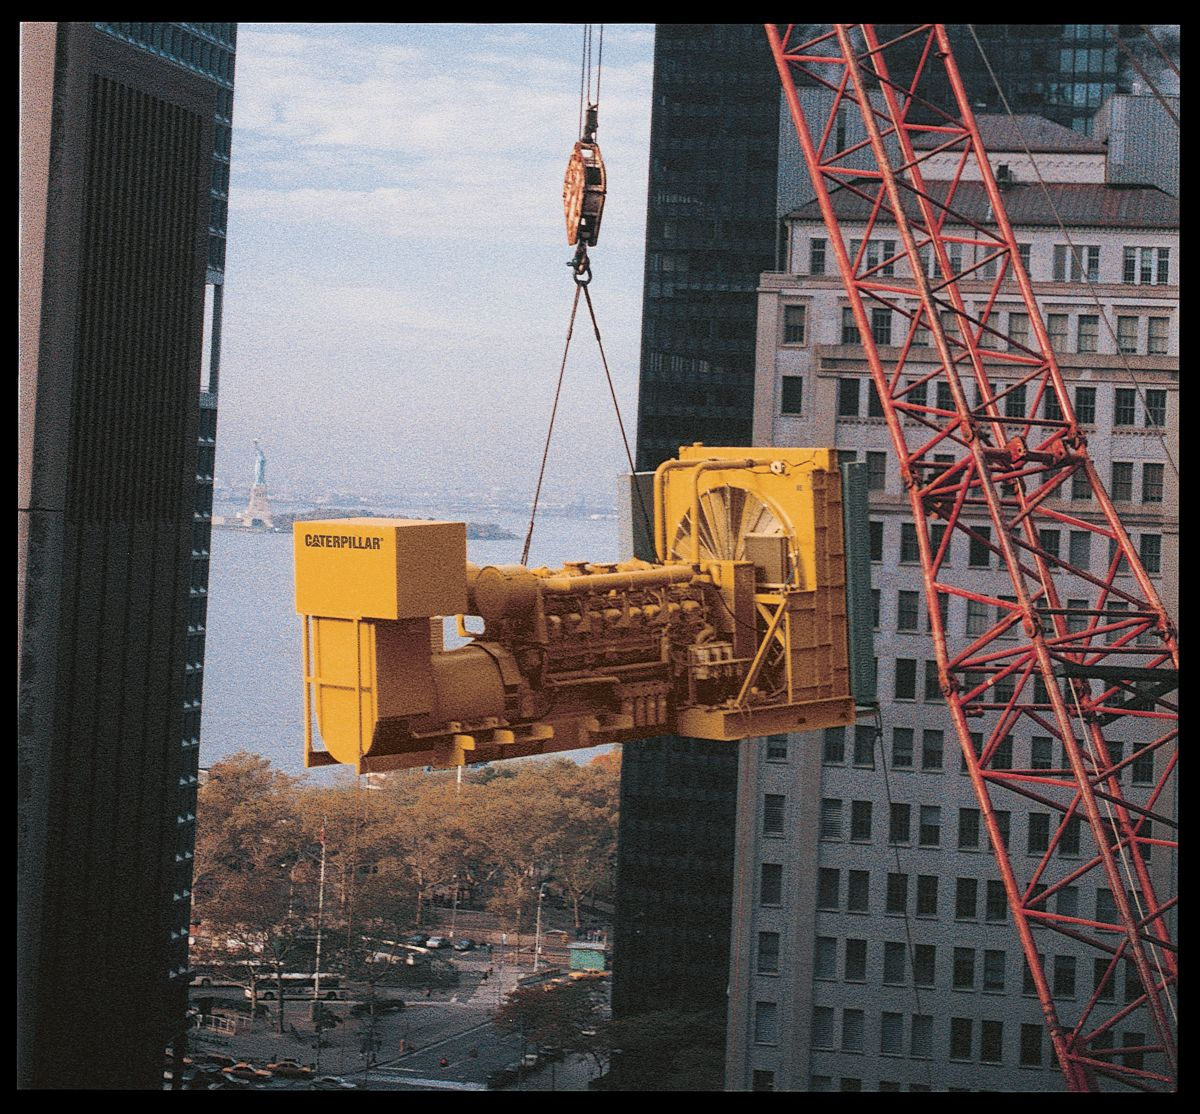 Cat 3516 Generator Set for back-up power in New York City in 1997.